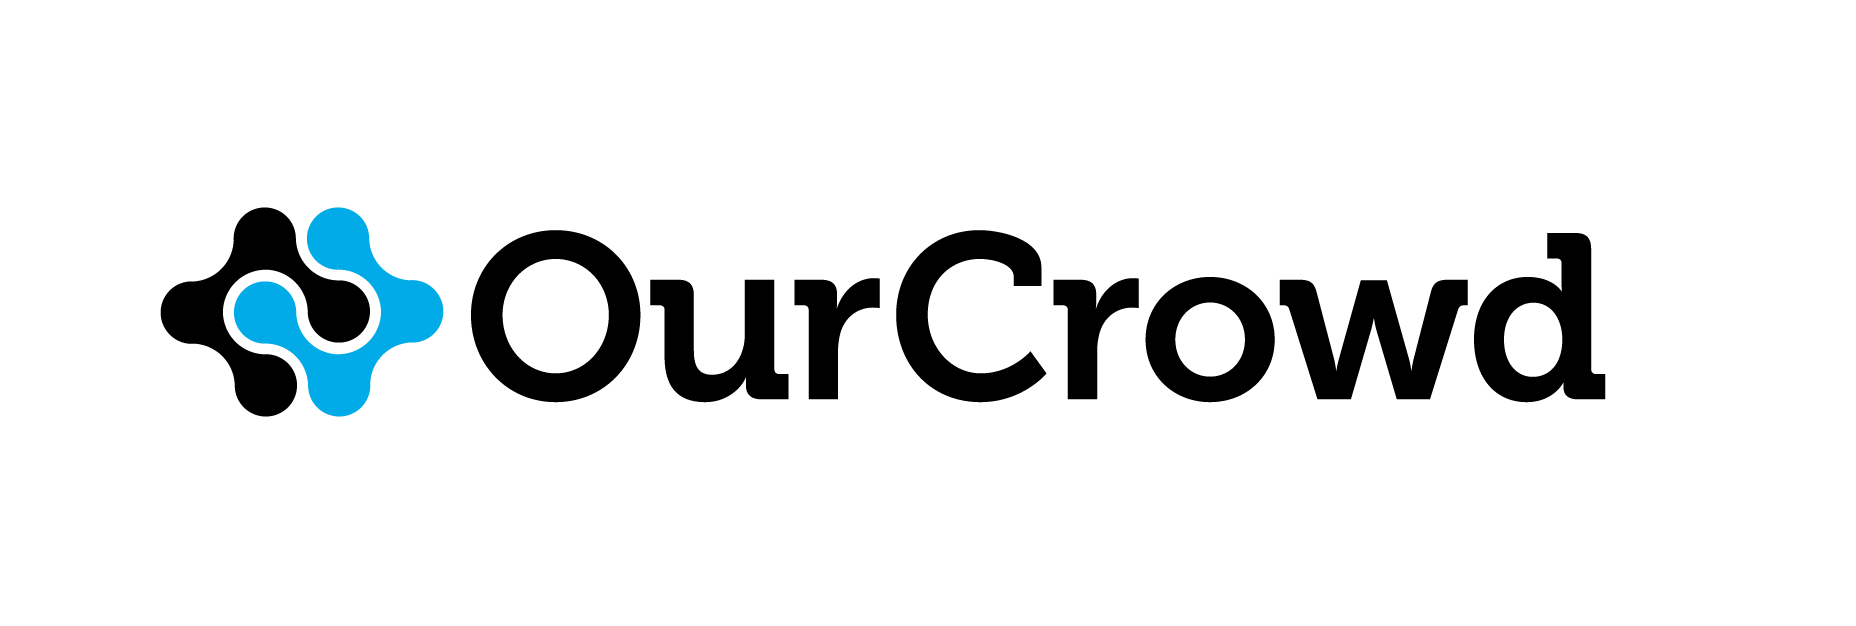 OurCrowd_logo rgb_for White background